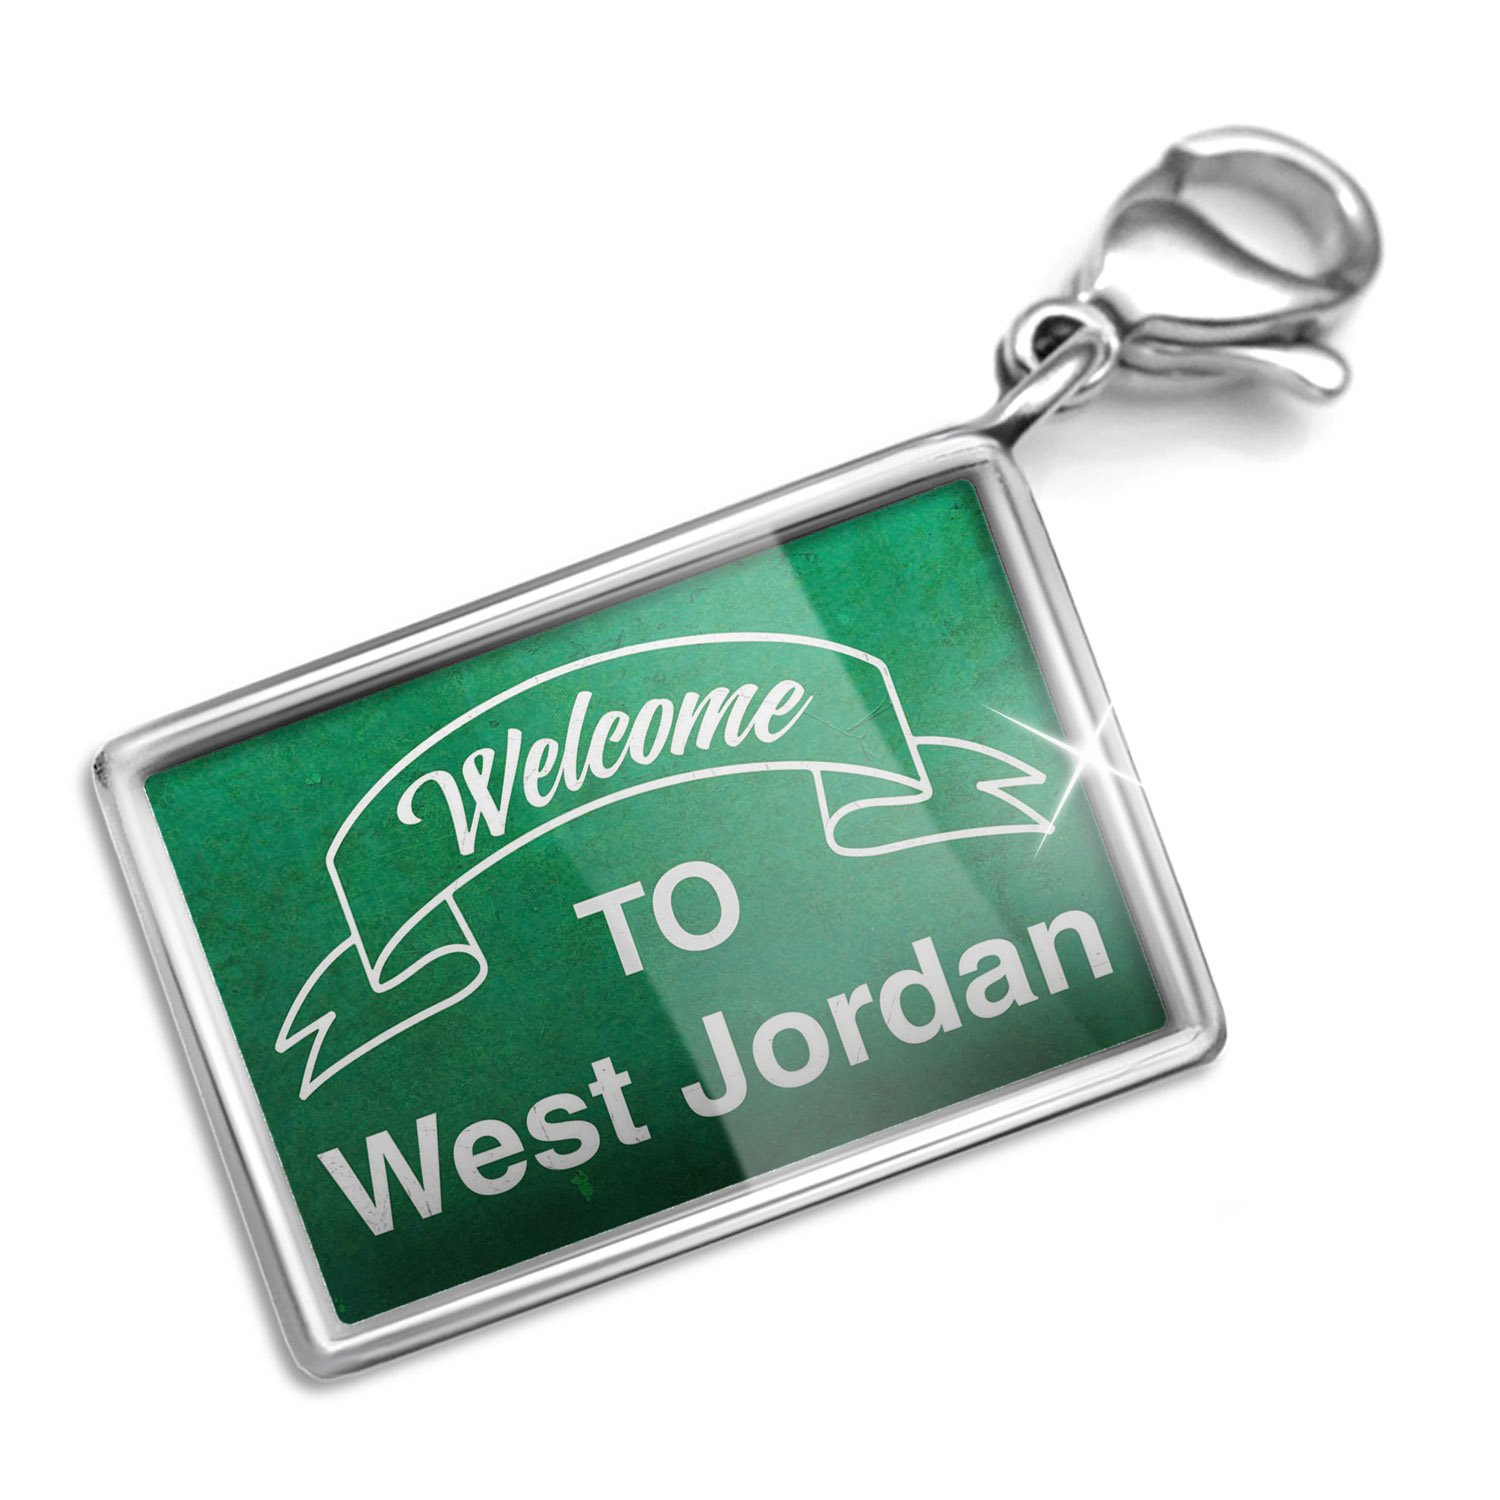 Clip on Charm & Bracelet Set Green Sign Welcome To West Jordan Lobster Clasp